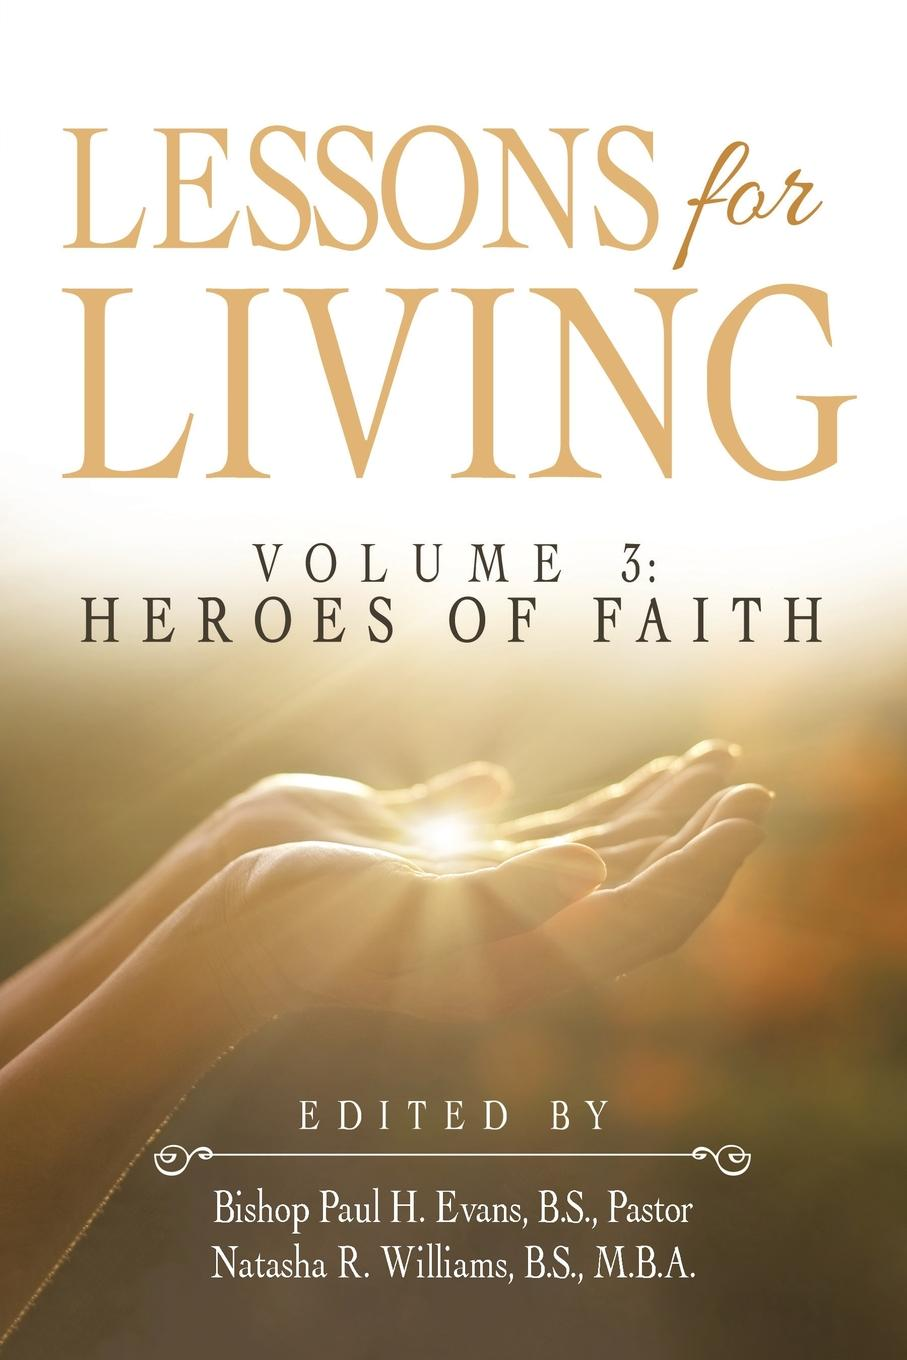 B.S. Pastor Bishop Paul H. Evans Lessons for Living. Volume 3: Heroes of Faith b s pastor bishop paul h evans lessons for living volume 3 heroes of faith